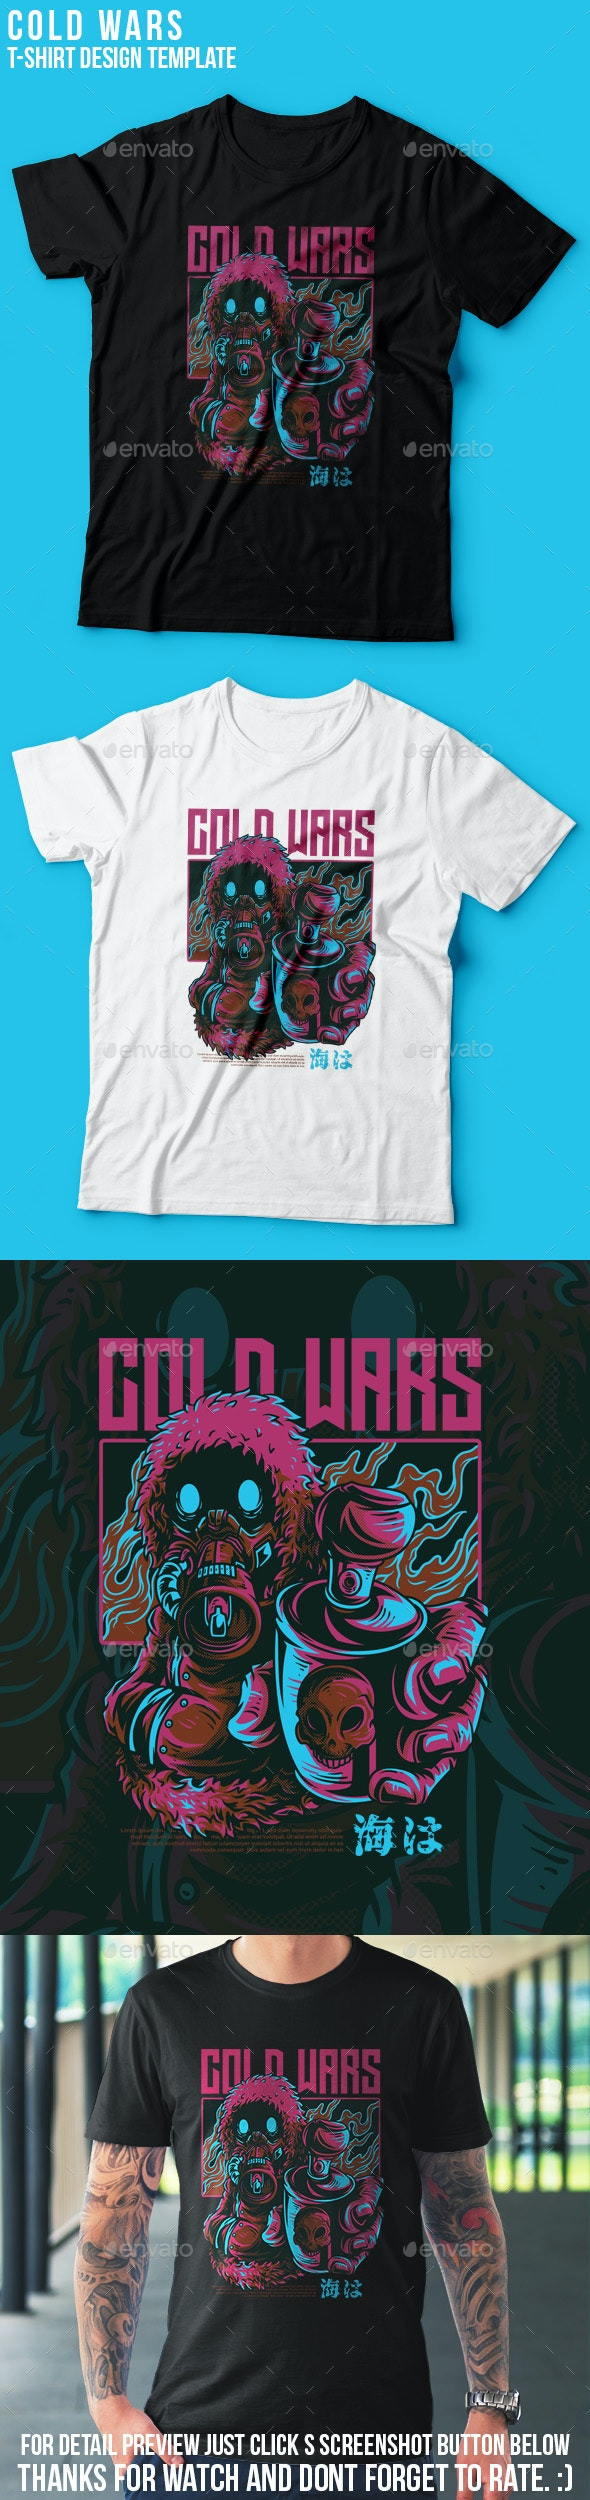 Cold Wars T-Shirt Design - Grunge Designs